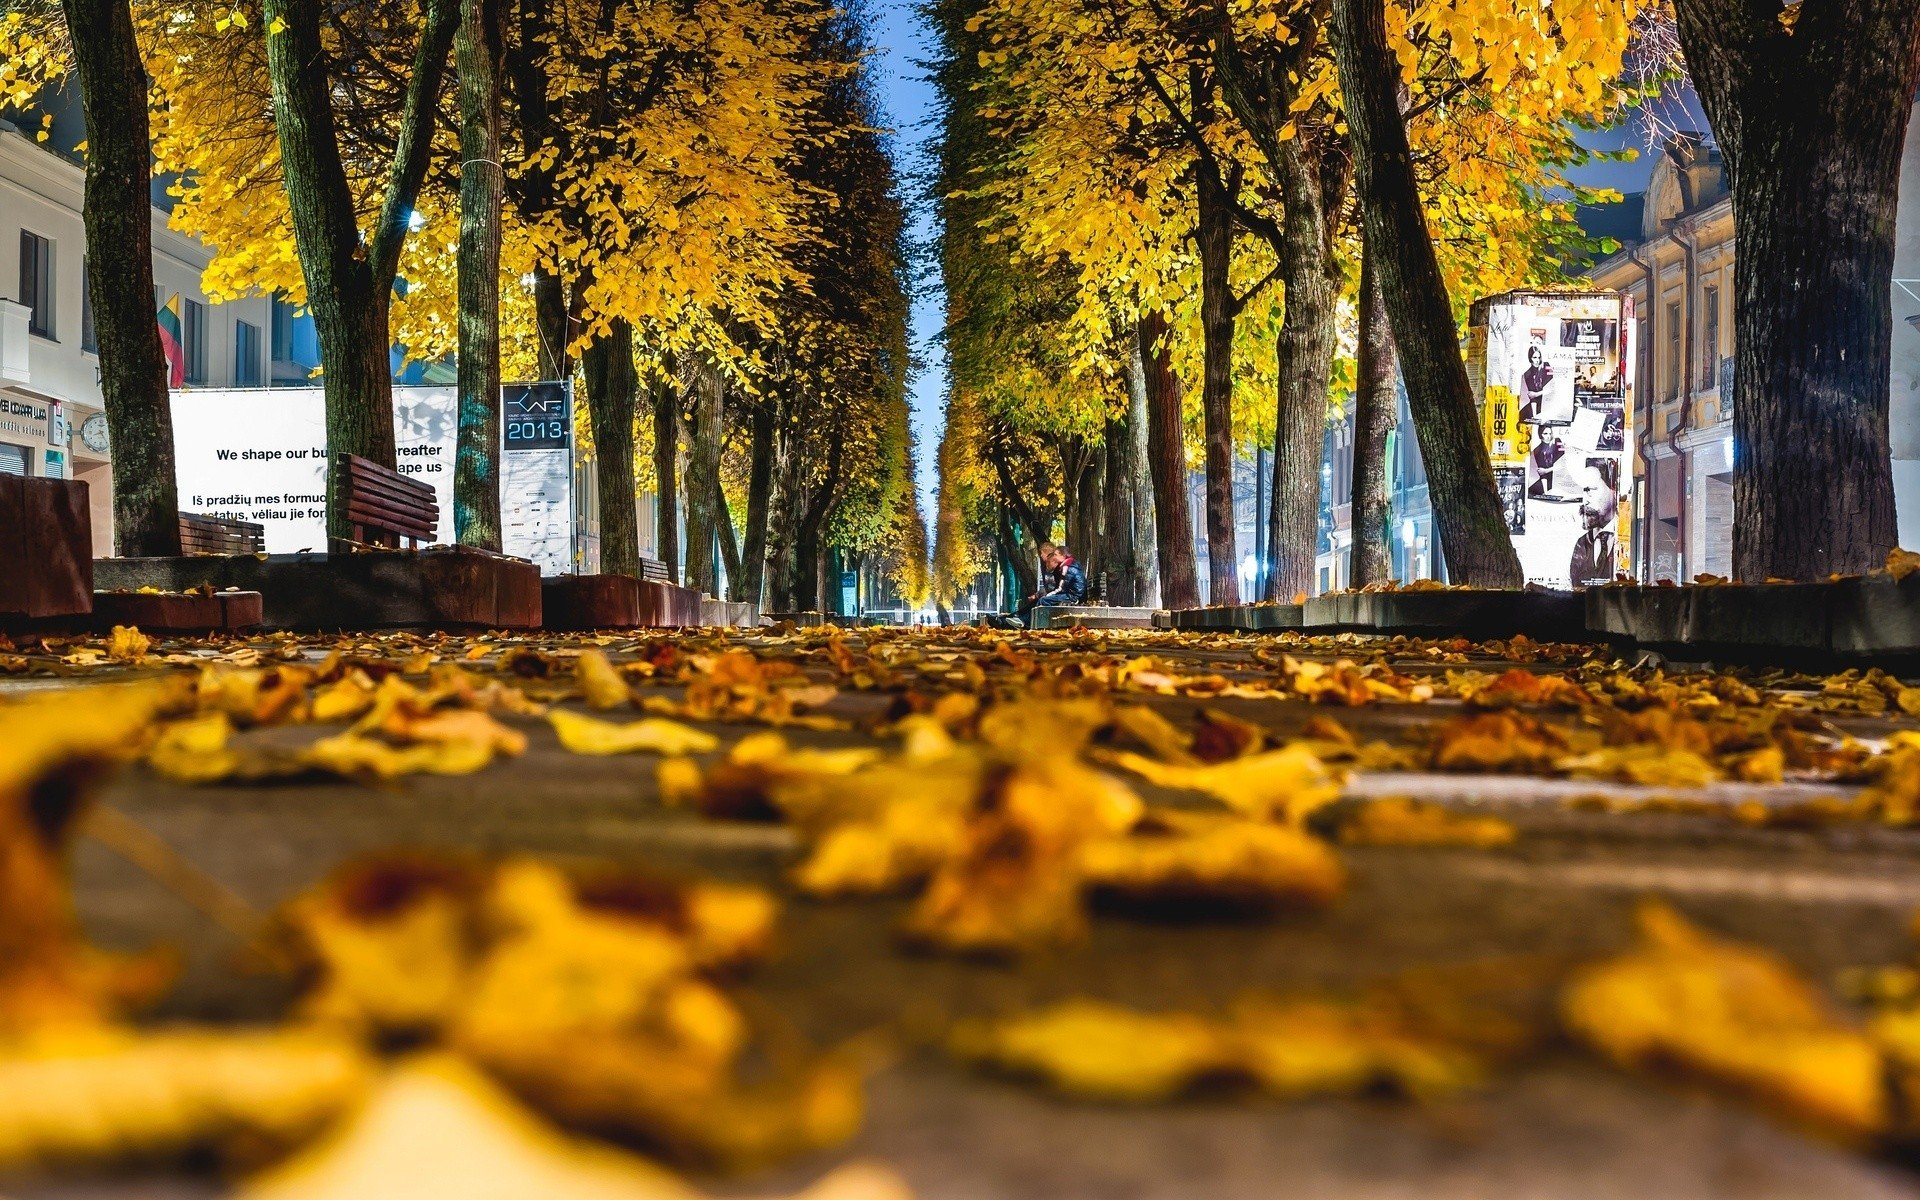 Rainy Fall Wallpaper Worms Eye View Trees Leaves Fall Street New York City